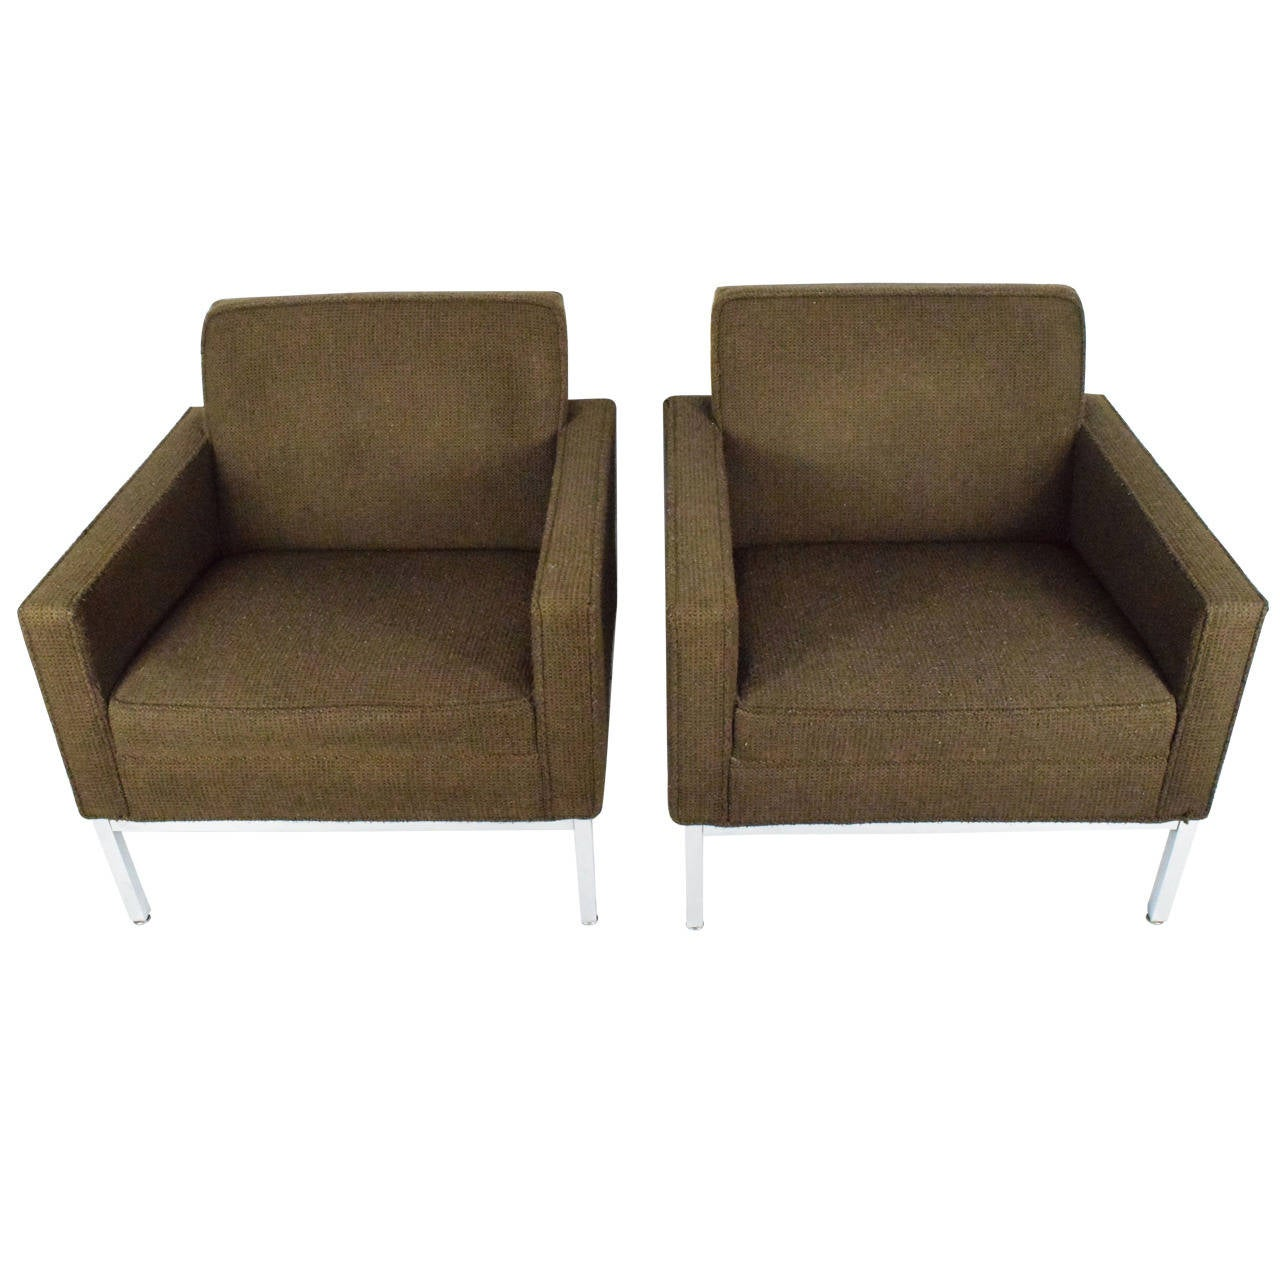 Steelcase lounge chairs - Pair Of Steelcase Lounge Chairs 1